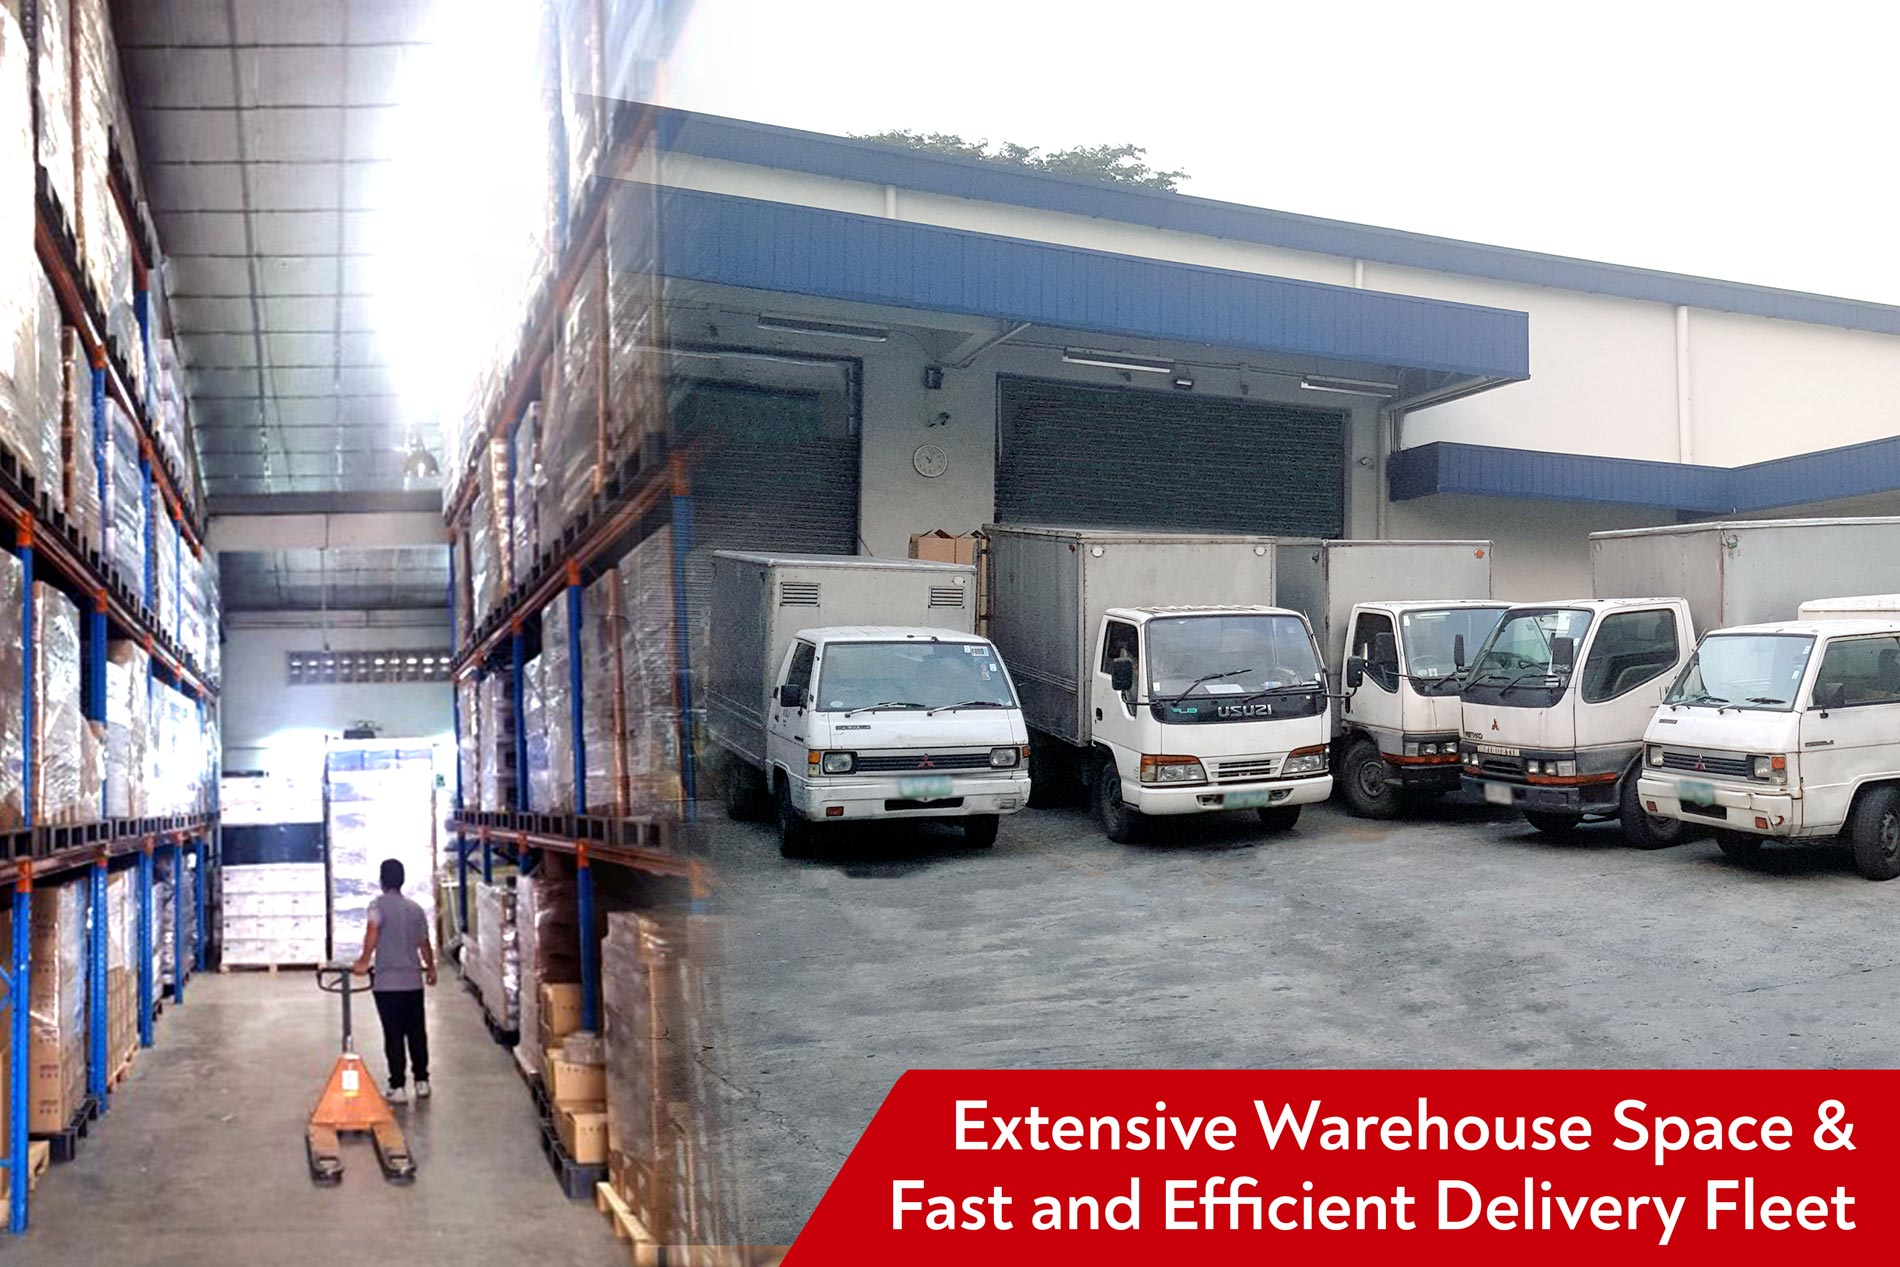 Extensive Warehouse Space & Fast and Efficient Delivery Fleet